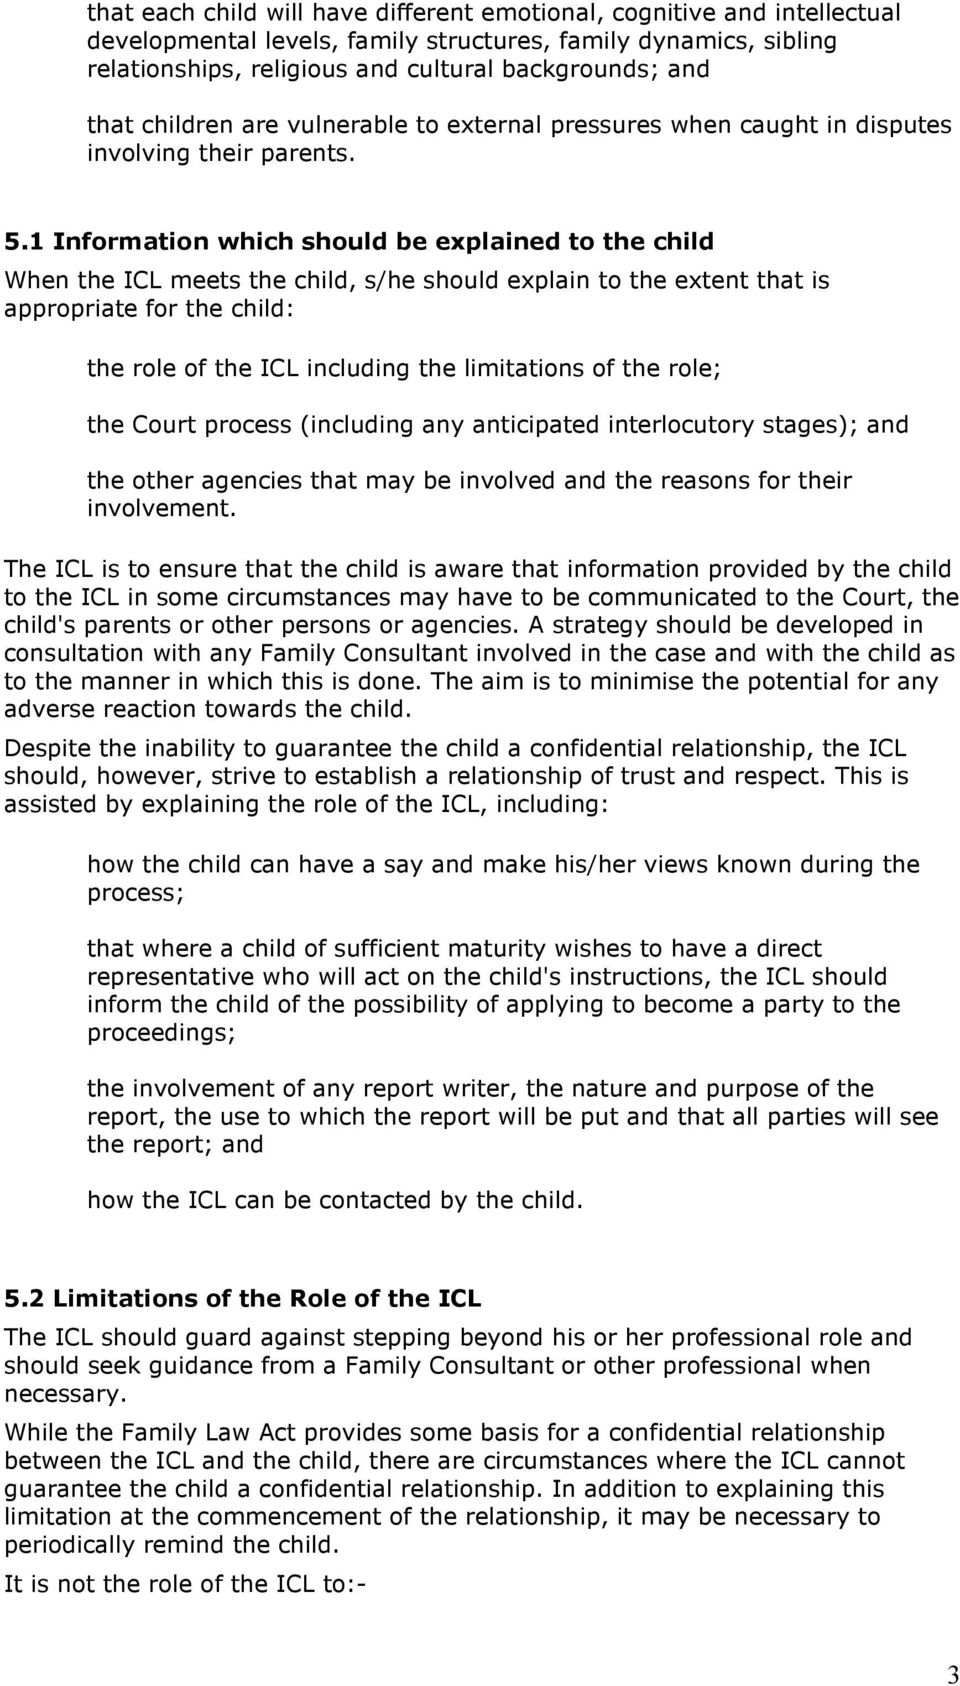 1 Information which should be explained to the child When the ICL meets the child, s/he should explain to the extent that is appropriate for the child: the role of the ICL including the limitations